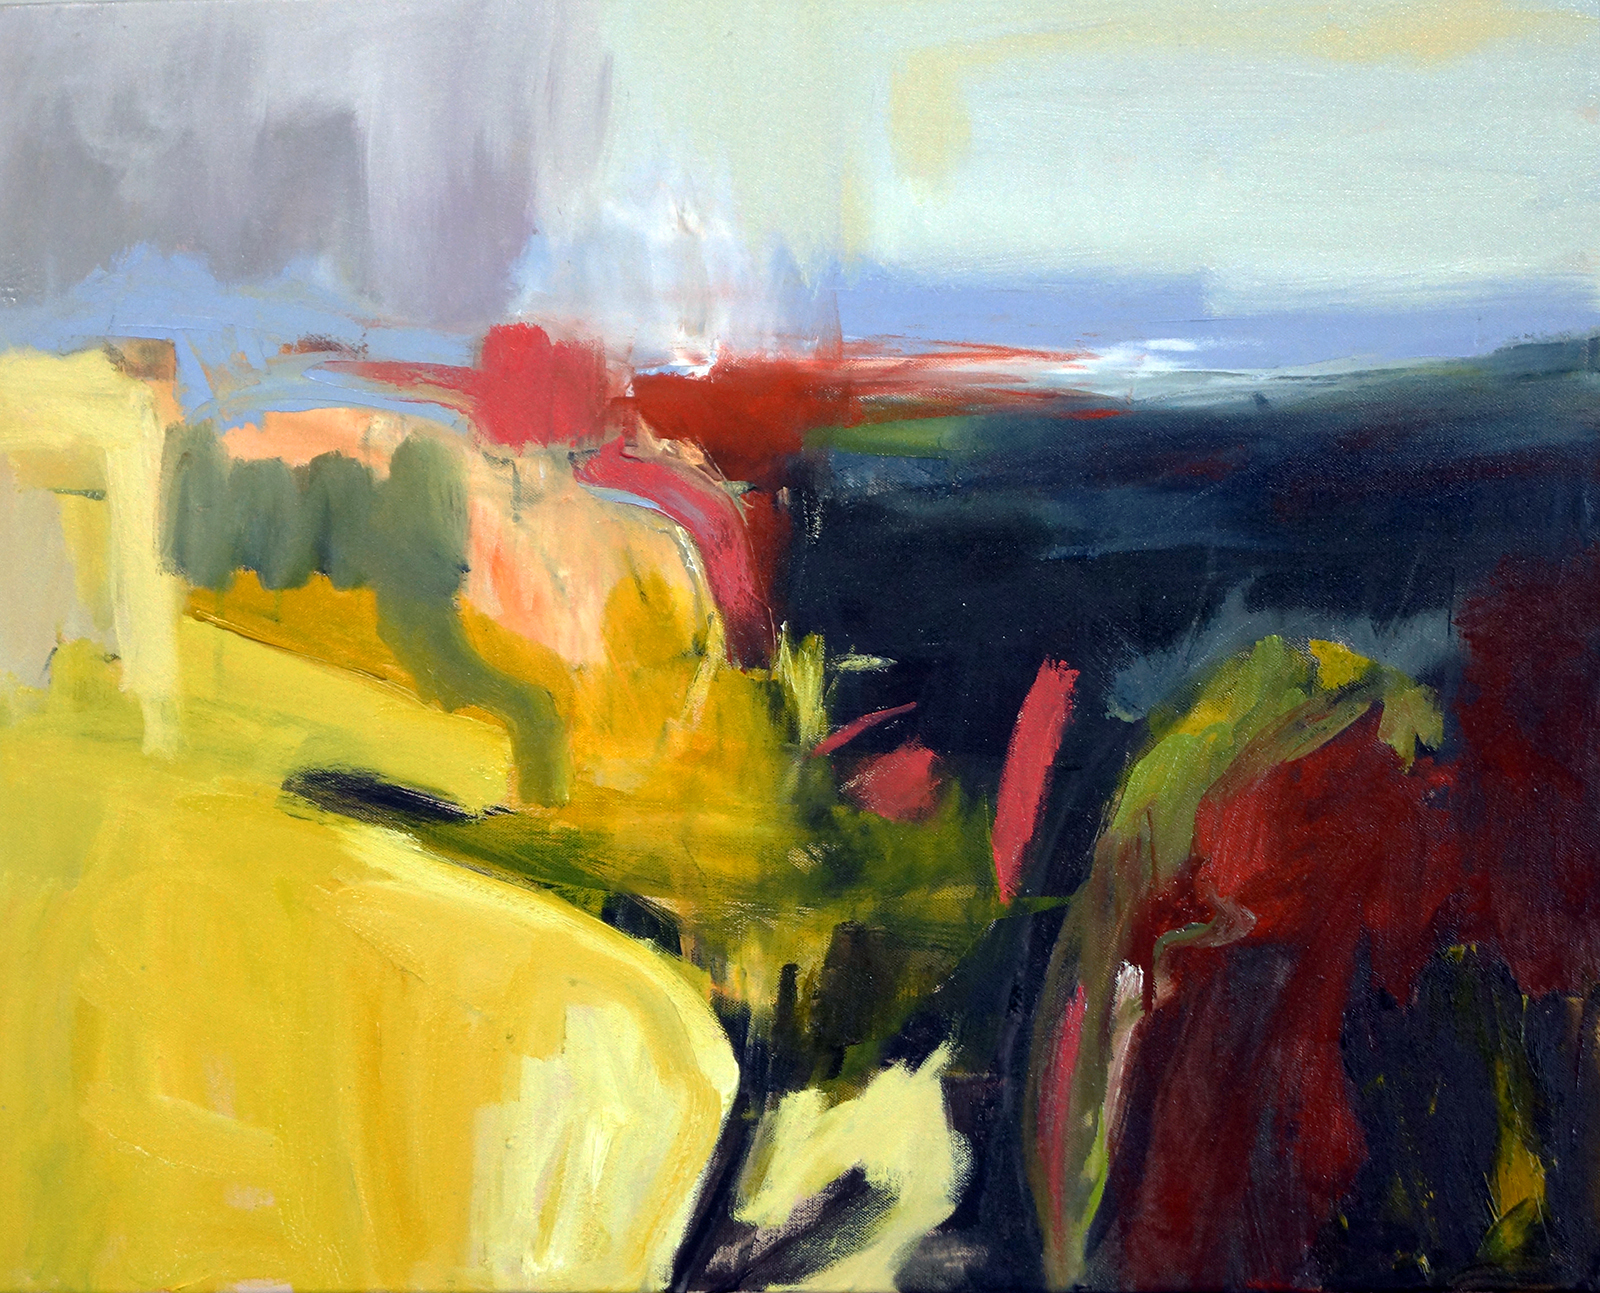 Hudson Valley Eight, 24x30, Oil on Canvas